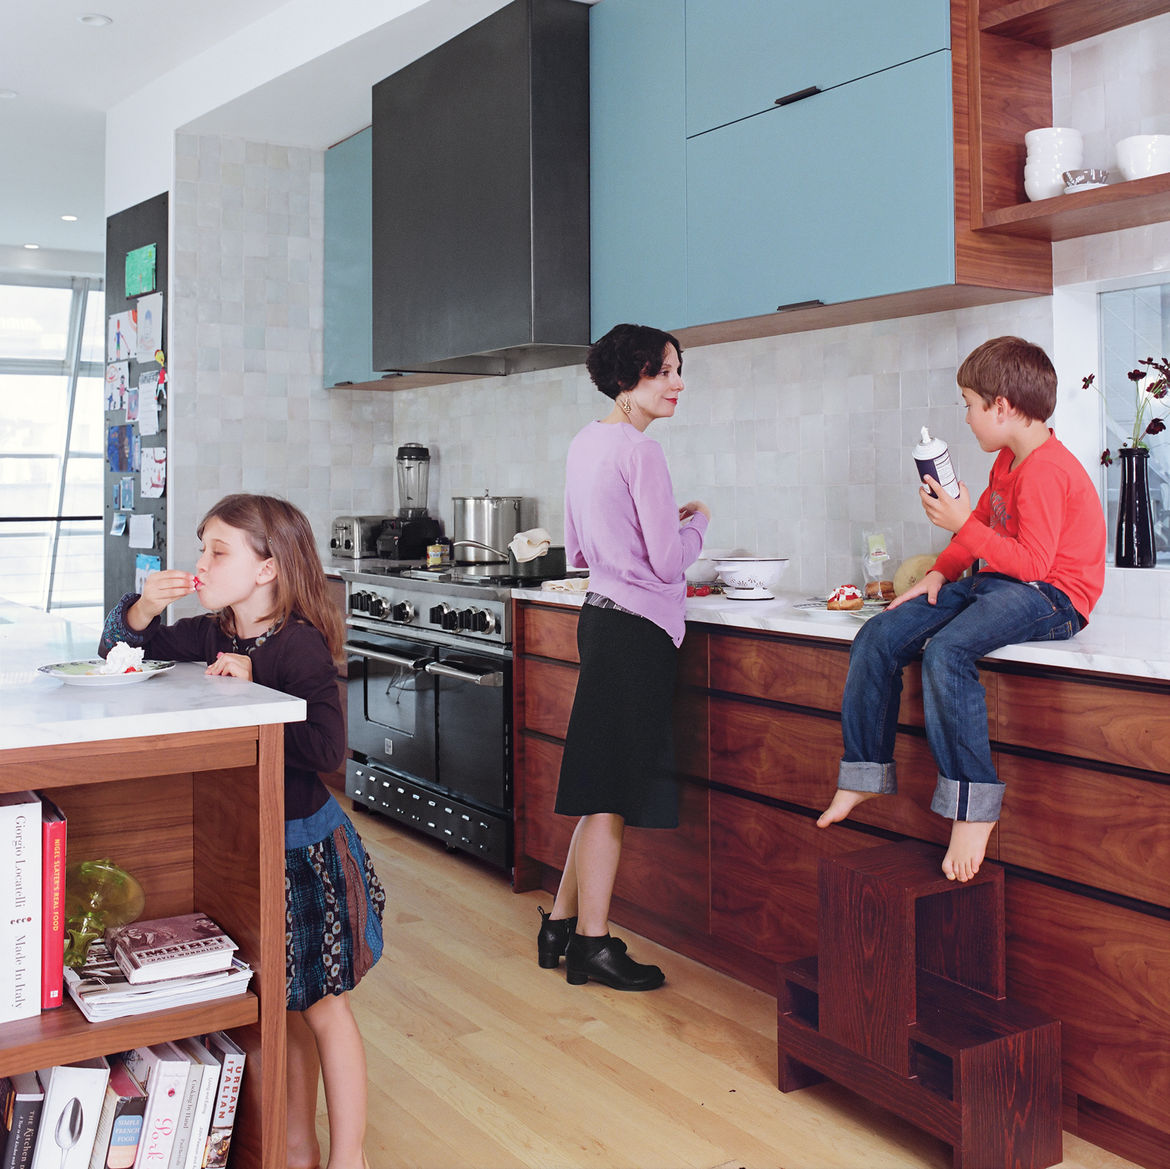 Sasha samples berries at the island while Wes, perched on the counter next to Deborah, clutches the whipped cream—similar in color to the backsplash, made of traditional Moroccan tiles and available through Emory & Cie.